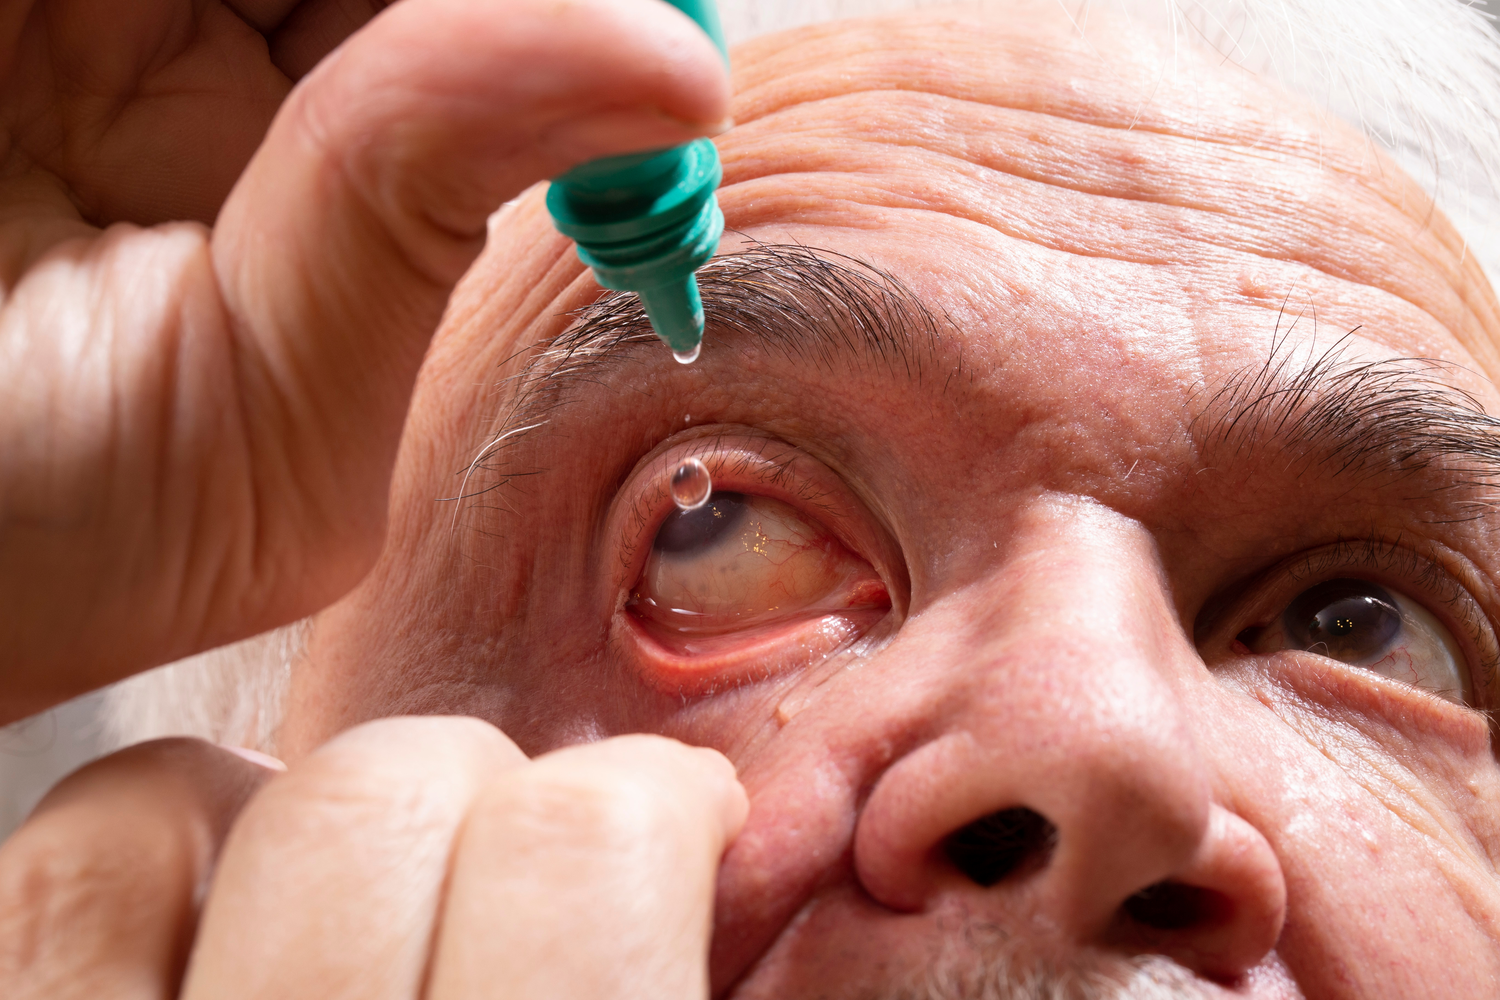 Diagnosing and Care for Glaucoma